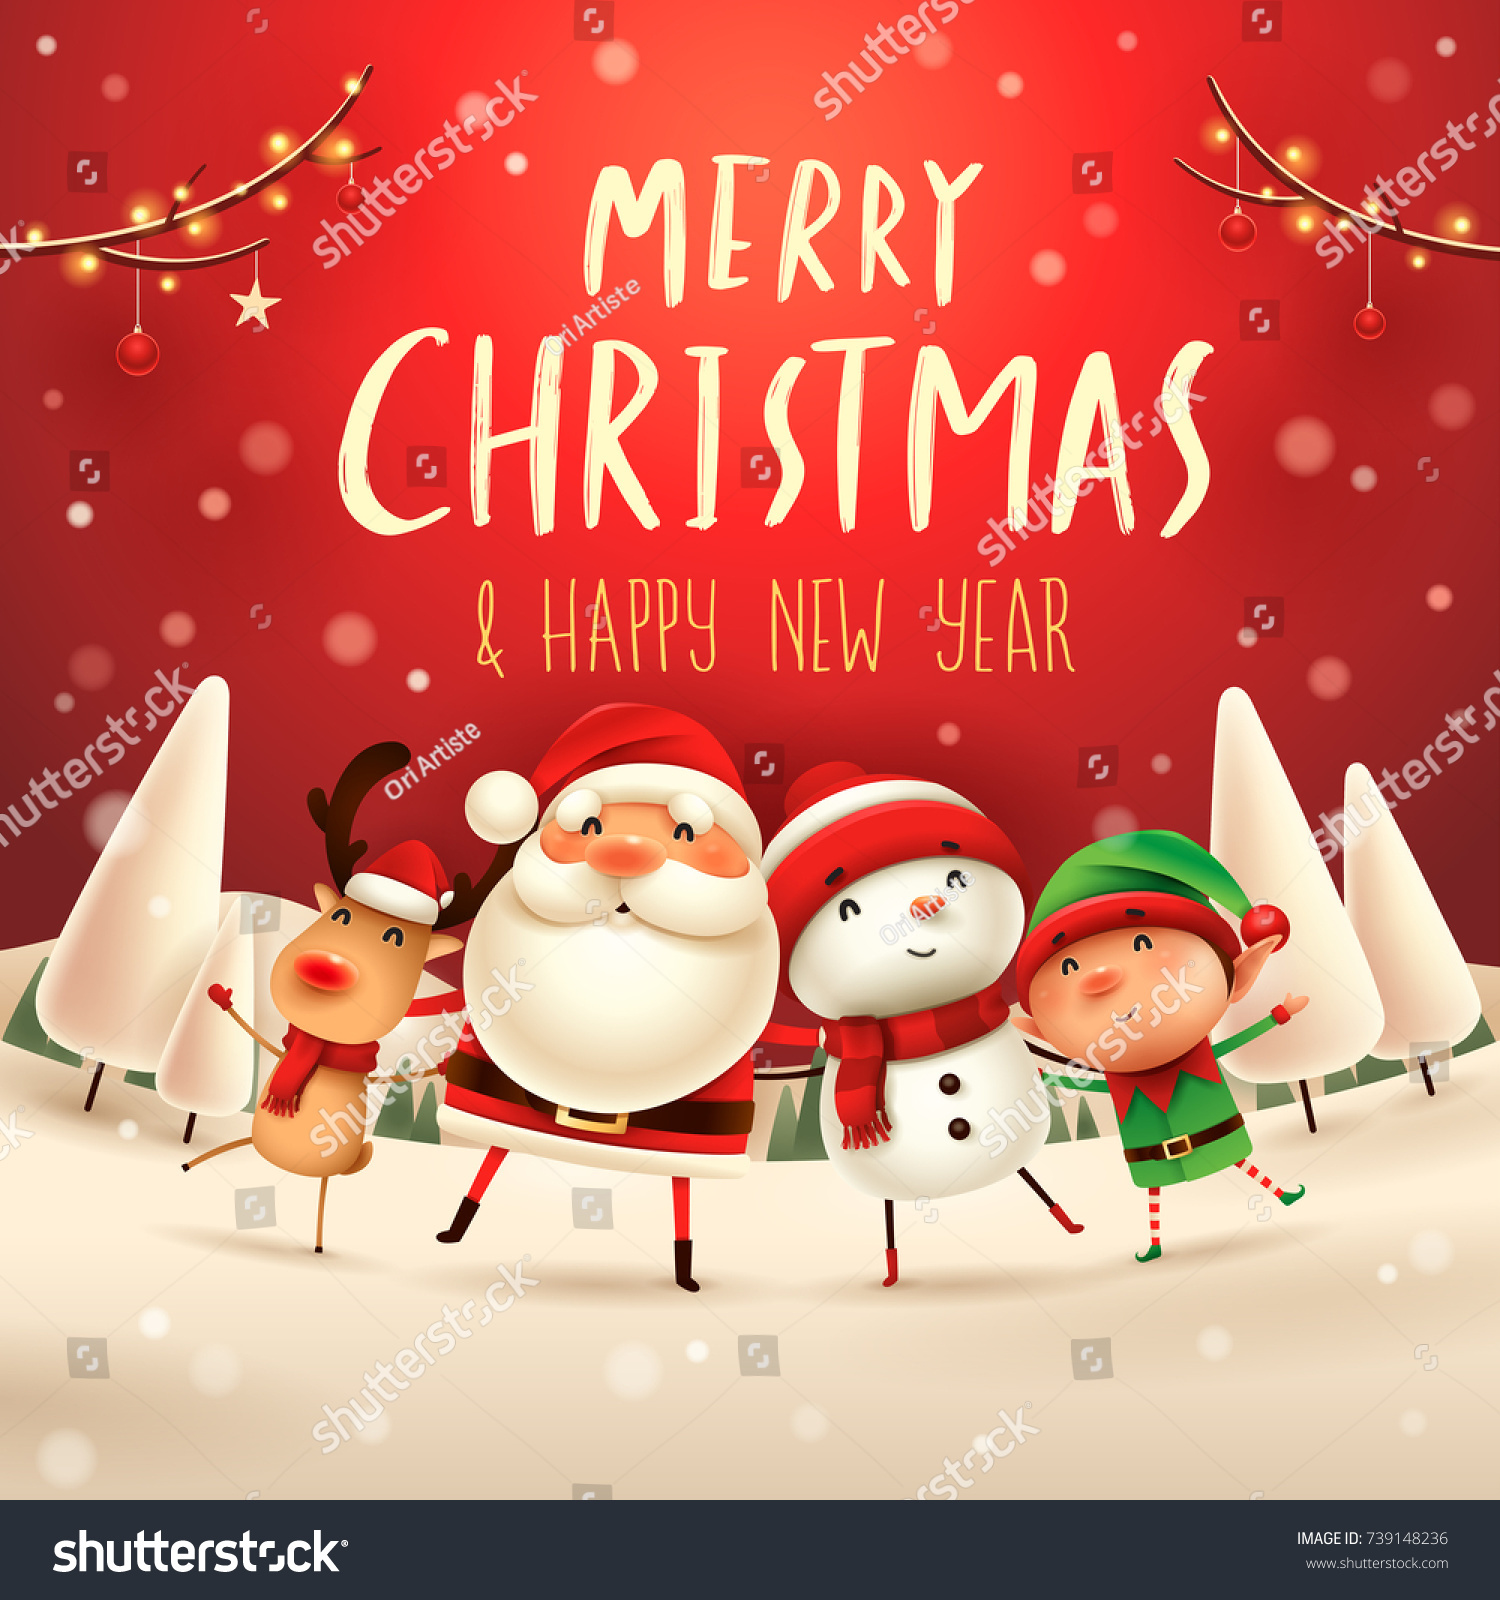 Similar Images, Stock Photos & Vectors of Merry Christmas Happy ...